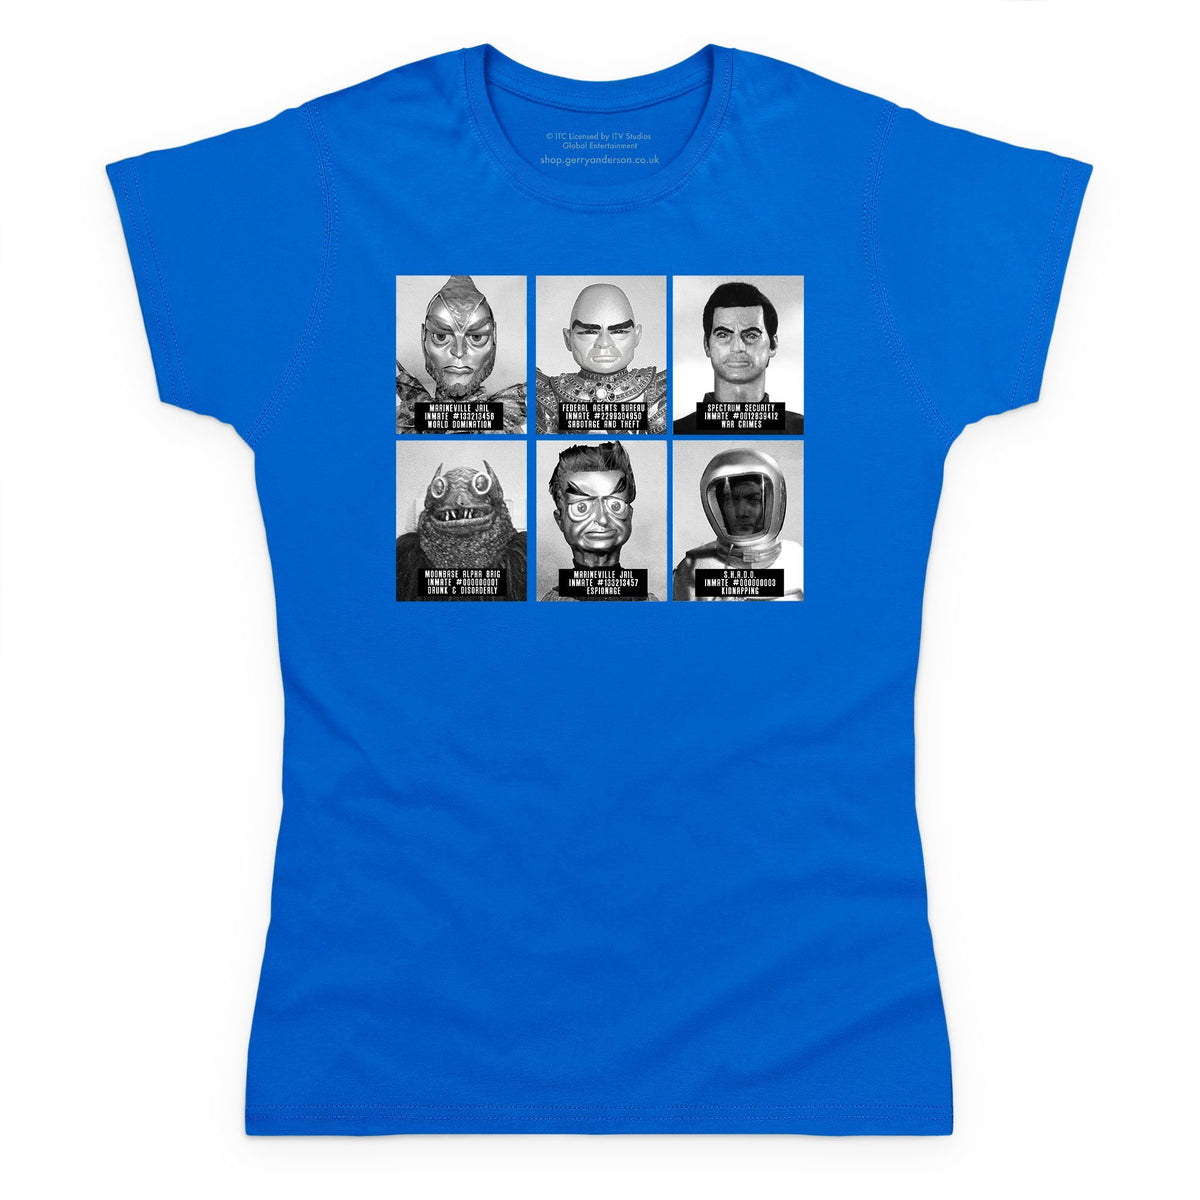 Suspects and Villains Women's T-shirt [Official & Exclusive] - The Gerry Anderson Store